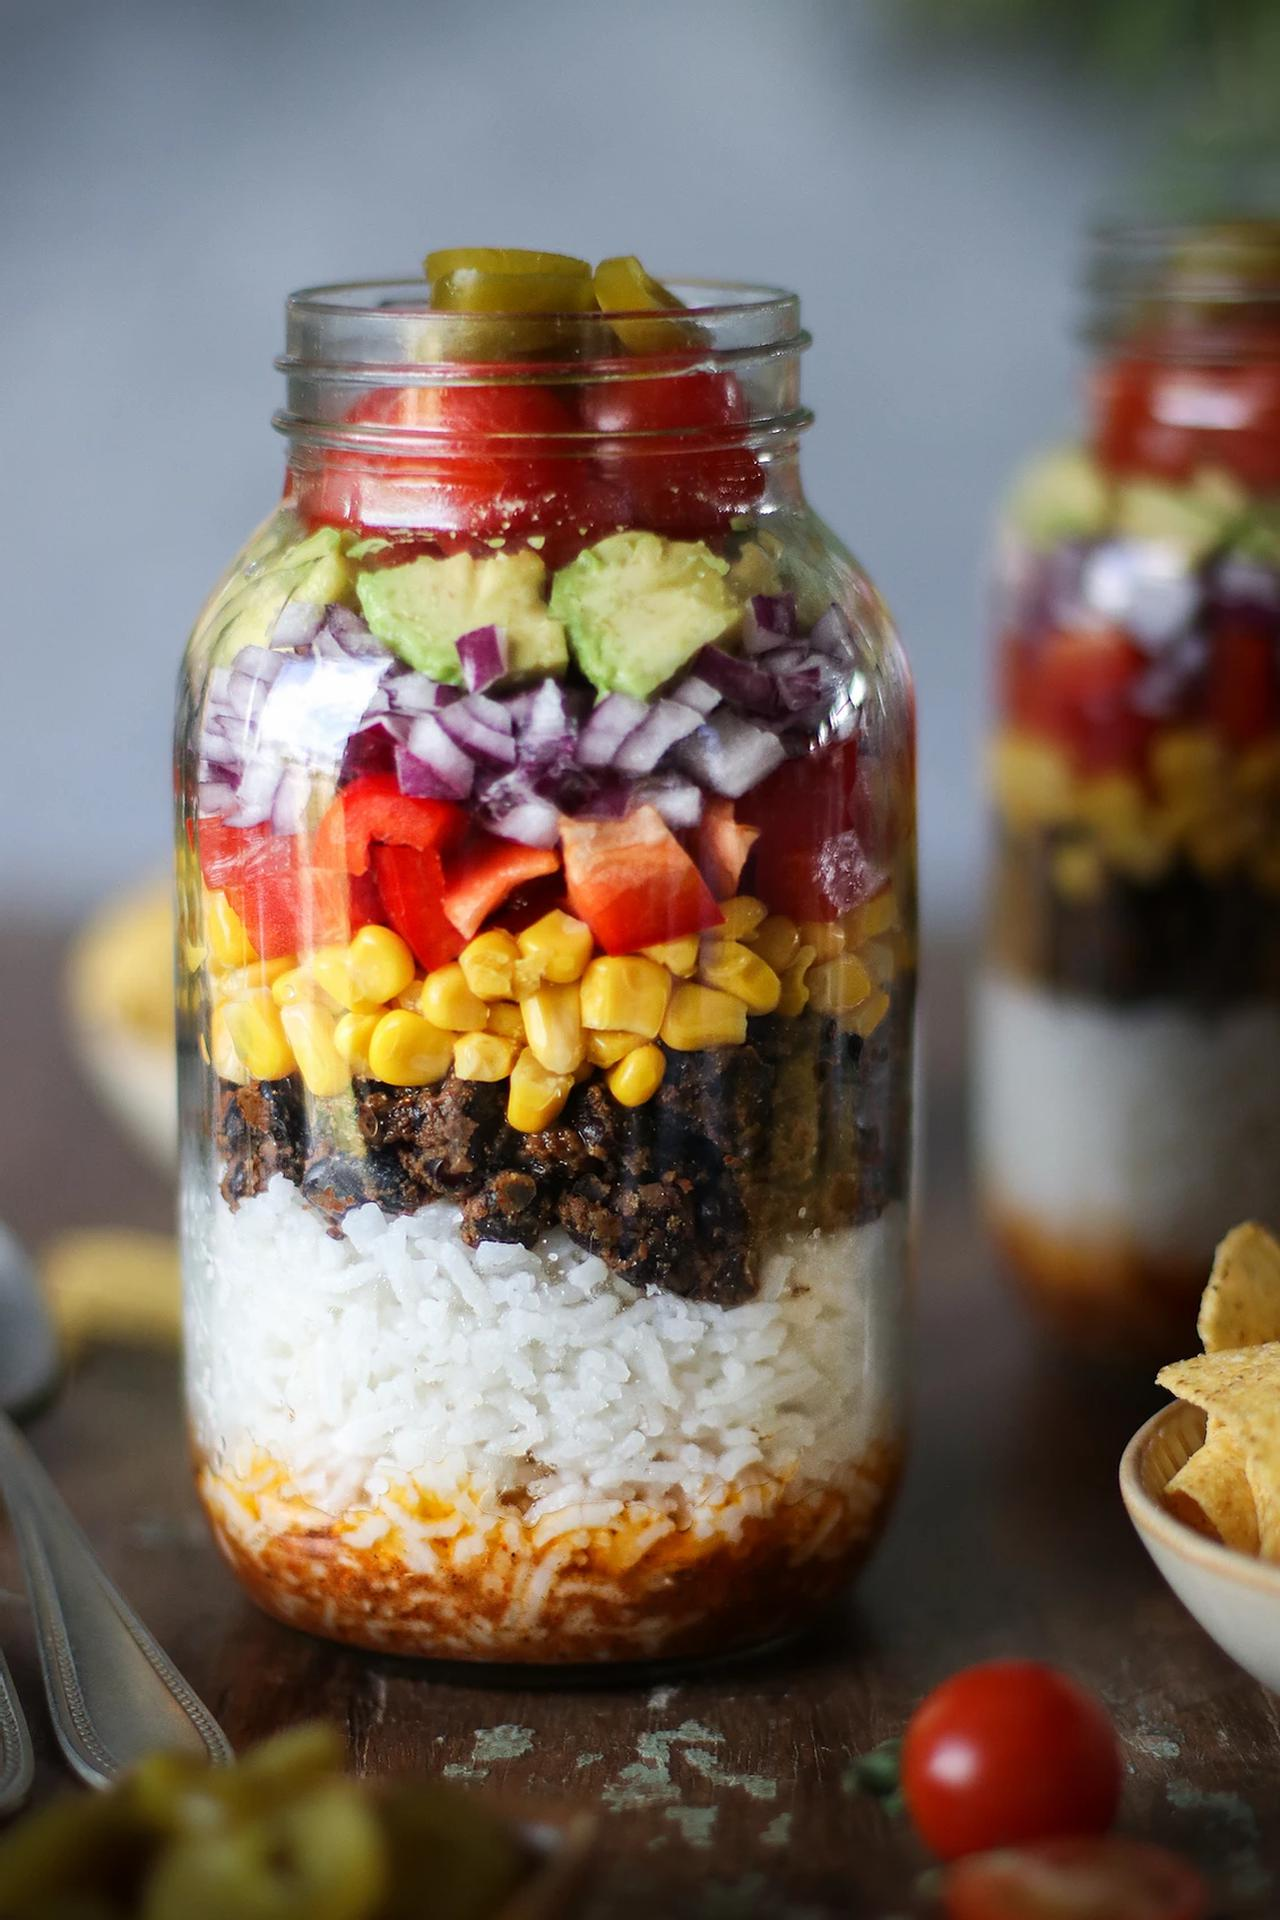 Main image of Spiced Black Bean & Rice Salad in a Jar